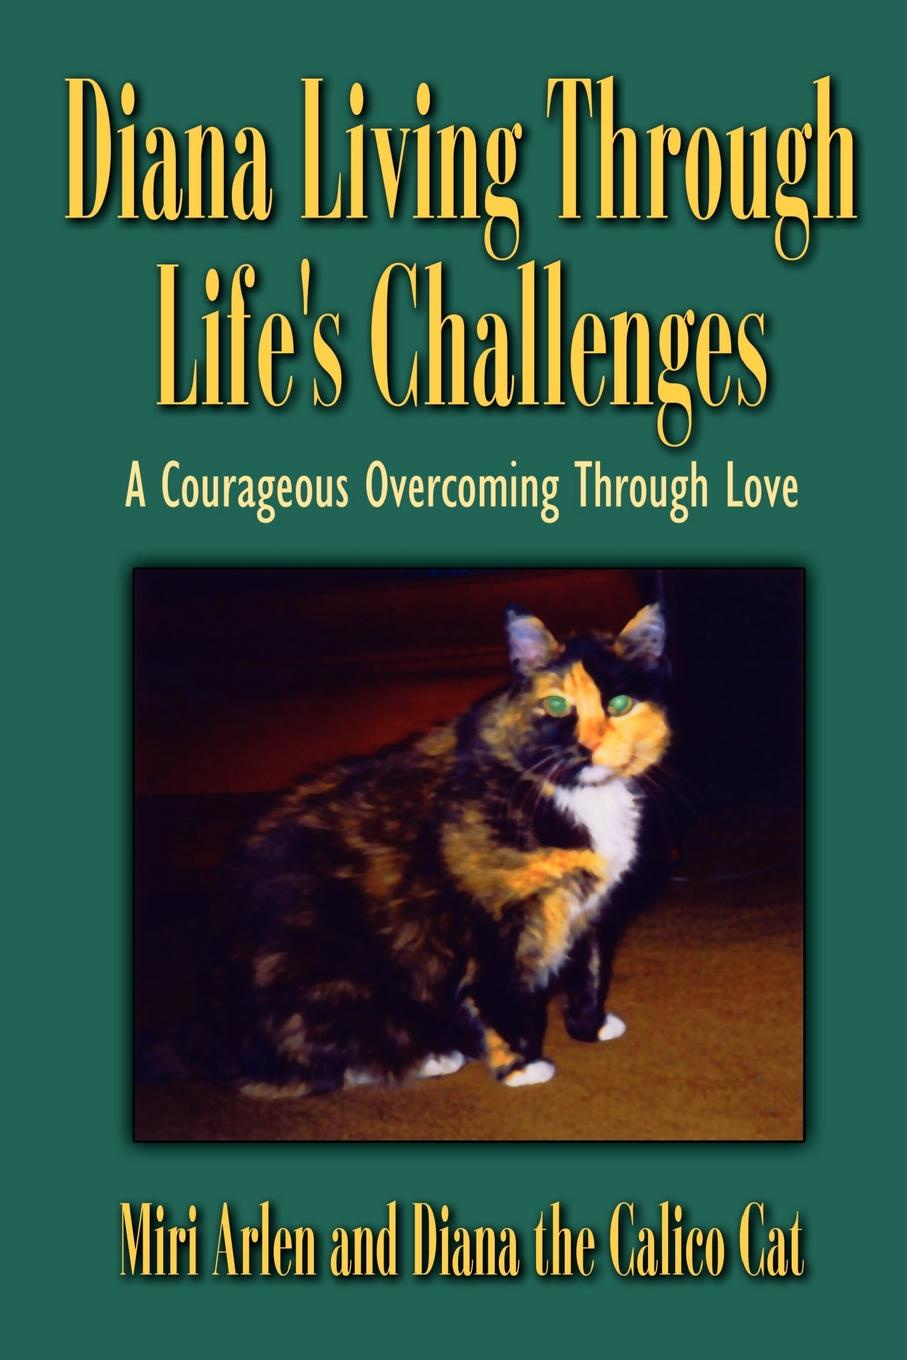 Miri Arlen, Diana Living Through Lifes Challenges. A Courageous Overcoming Love